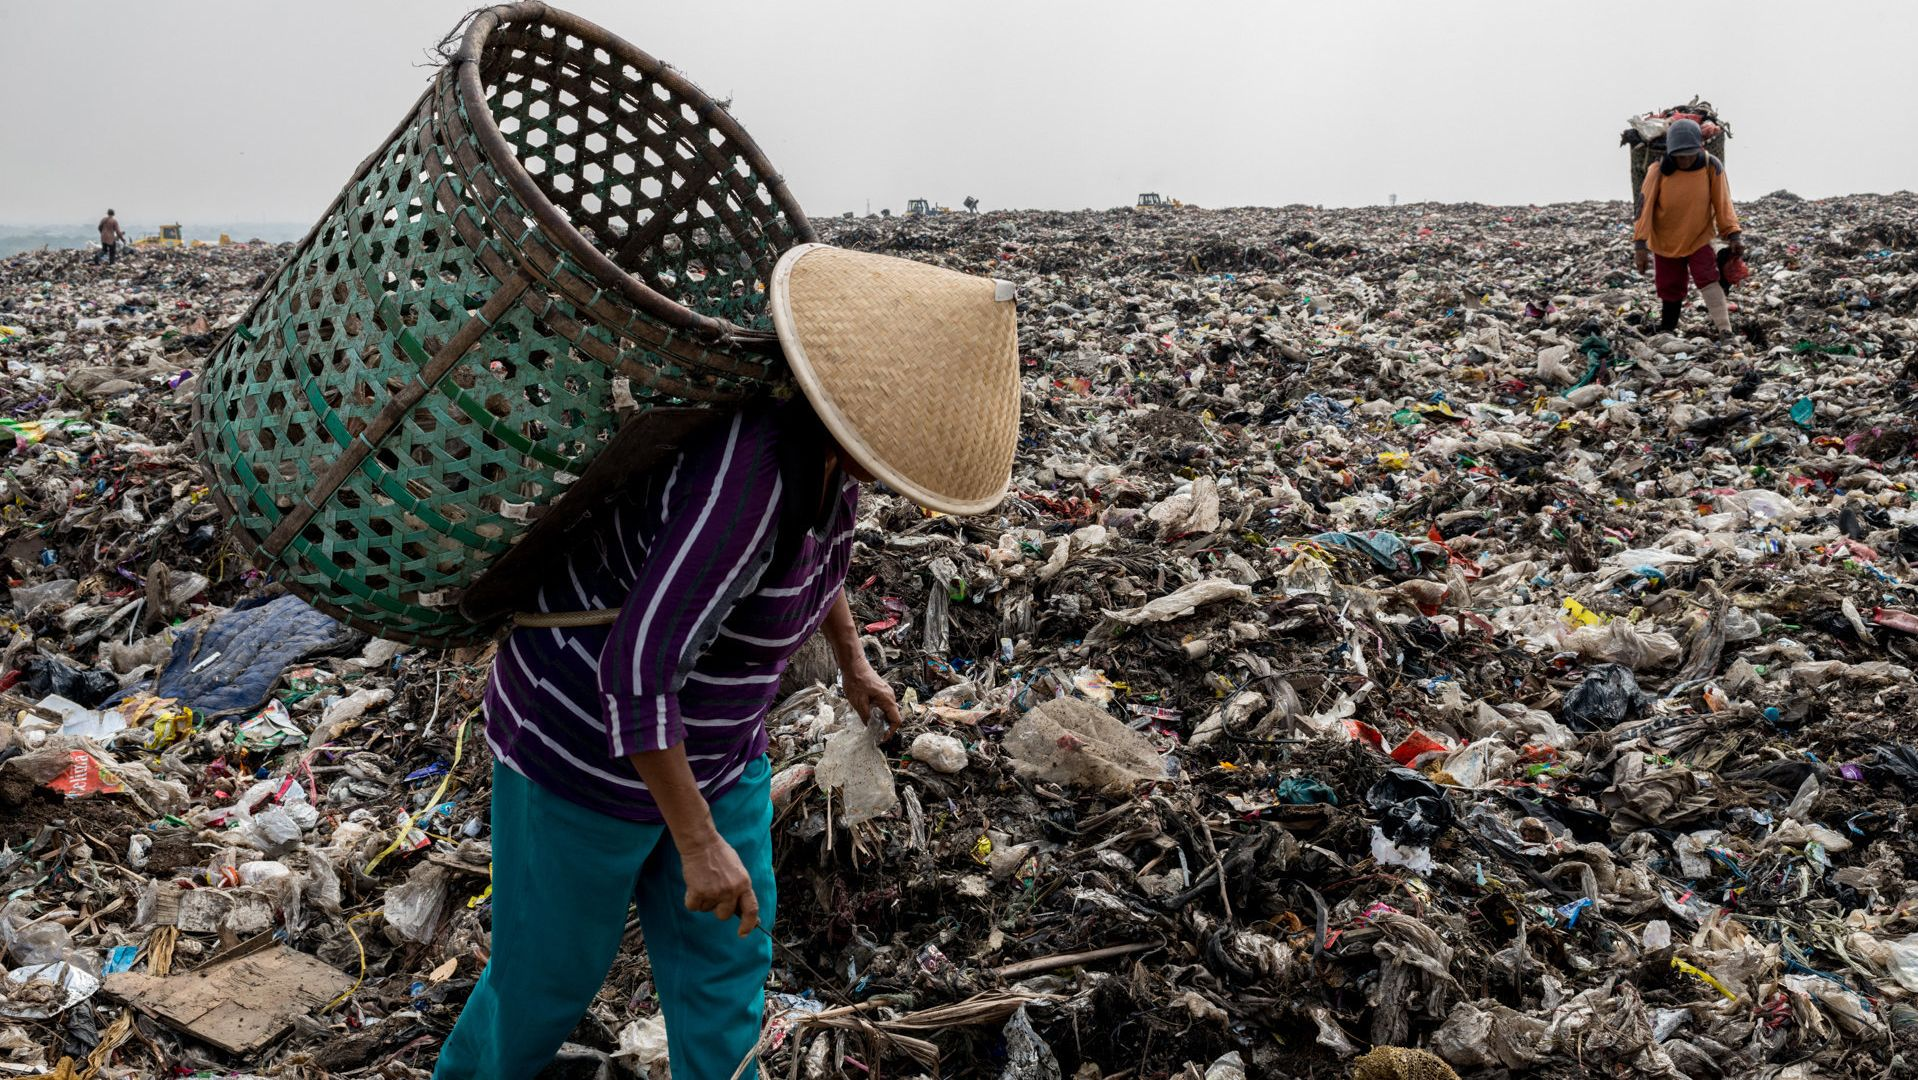 People Are Living Inside Landfills As The World Drowns In